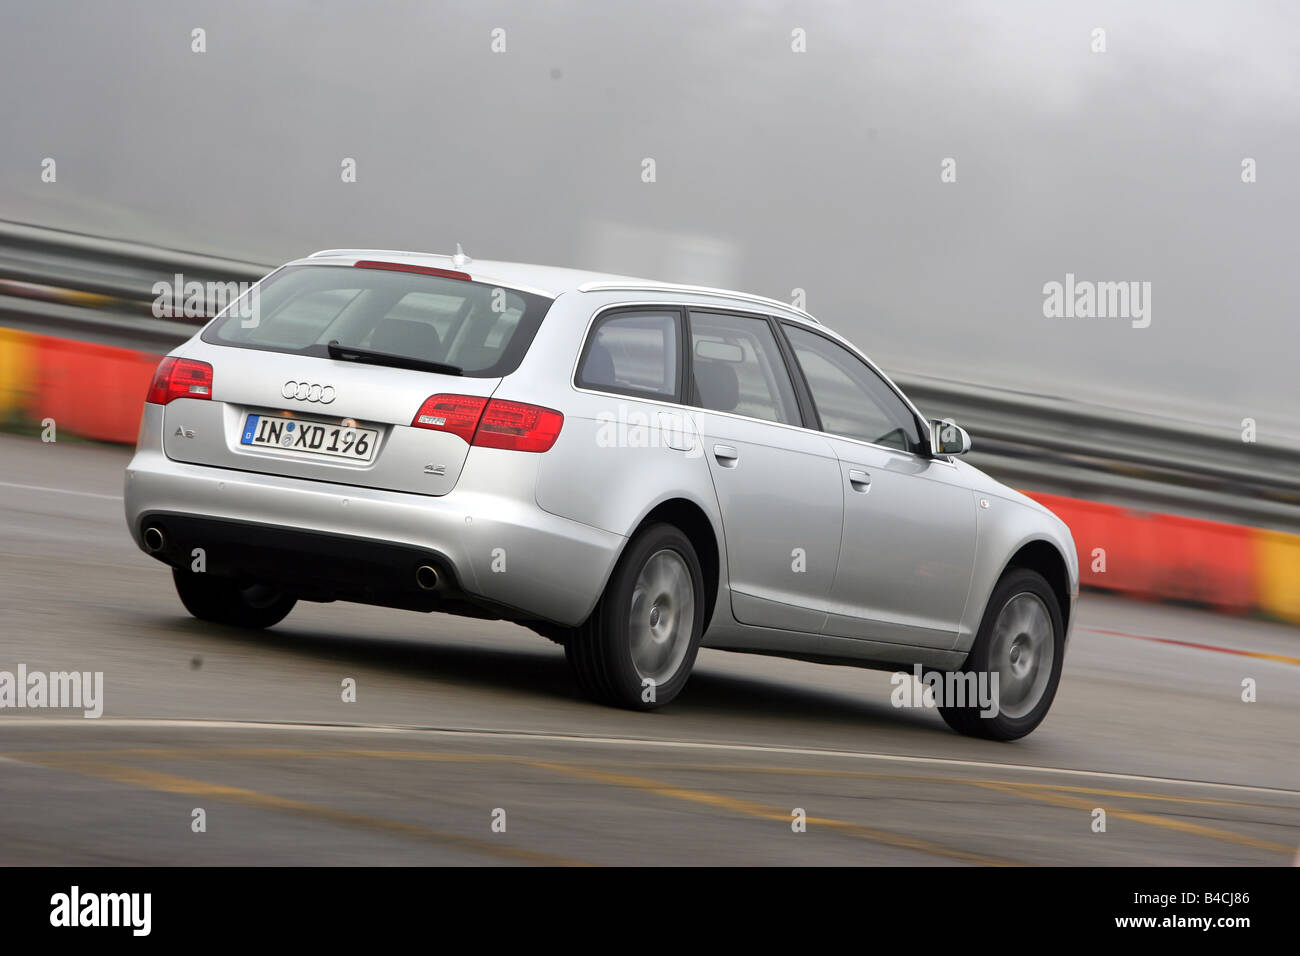 hight resolution of audi a6 avant 4 2 quattro model year 2005 silver driving diagonal from the back rear view test track